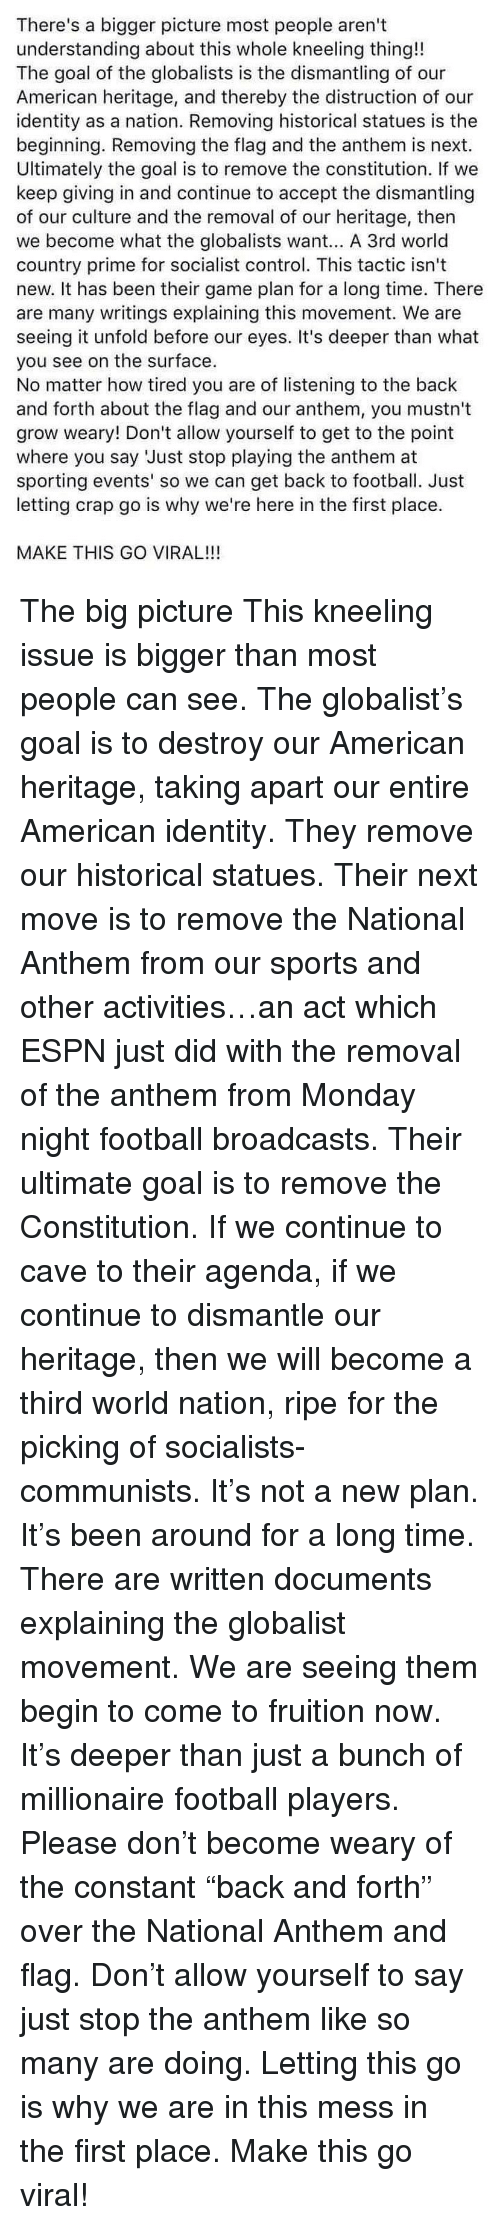 Kneeling: There's a bigger picture most people aren't  understanding about this whole kneeling thing!!  The goal of the globalists is the dismantling of our  American heritage, and thereby the distruction of our  identity as a nation. Removing historical statues is the  beginning. Removing the flag and the anthem is next.  Ultimately the goal is to remove the constitution. If we  keep giving in and continue to accept the dismantling  of our culture and the removal of our heritage, then  we become what the globalists want... A 3rd world  country prime for socialist control. This tactic isn't  new. It has been their game plan for a long time. There  are many writings explaining this movement. We are  seeing it unfold before our eyes. It's deeper than what  you see on the surface.  No matter how tired you are of listening to the back  and forth about the flag and our anthem, you mustn't  grow weary! Don't allow yourself to get to the point  where you say Just stop playing the anthem at  sporting events' so we can get back to football. Just  letting crap go is why we're here in the first place.  MAKE THIS GO VIRAL!!! The big picture This kneeling issue is bigger than most people can see. The globalist's goal is to destroy our American heritage, taking apart our entire American identity. They remove our historical statues. Their next move is to remove the National Anthem from our sports and other activities…an act which ESPN just did with the removal of the anthem from Monday night football broadcasts. Their ultimate goal is to remove the Constitution. If we continue to cave to their agenda, if we continue to dismantle our heritage, then we will become a third world nation, ripe for the picking of socialists-communists. It's not a new plan. It's been around for a long time. There are written documents explaining the globalist movement. We are seeing them begin to come to fruition now. It's deeper than just a bunch of millionaire football players. Please don't become wear